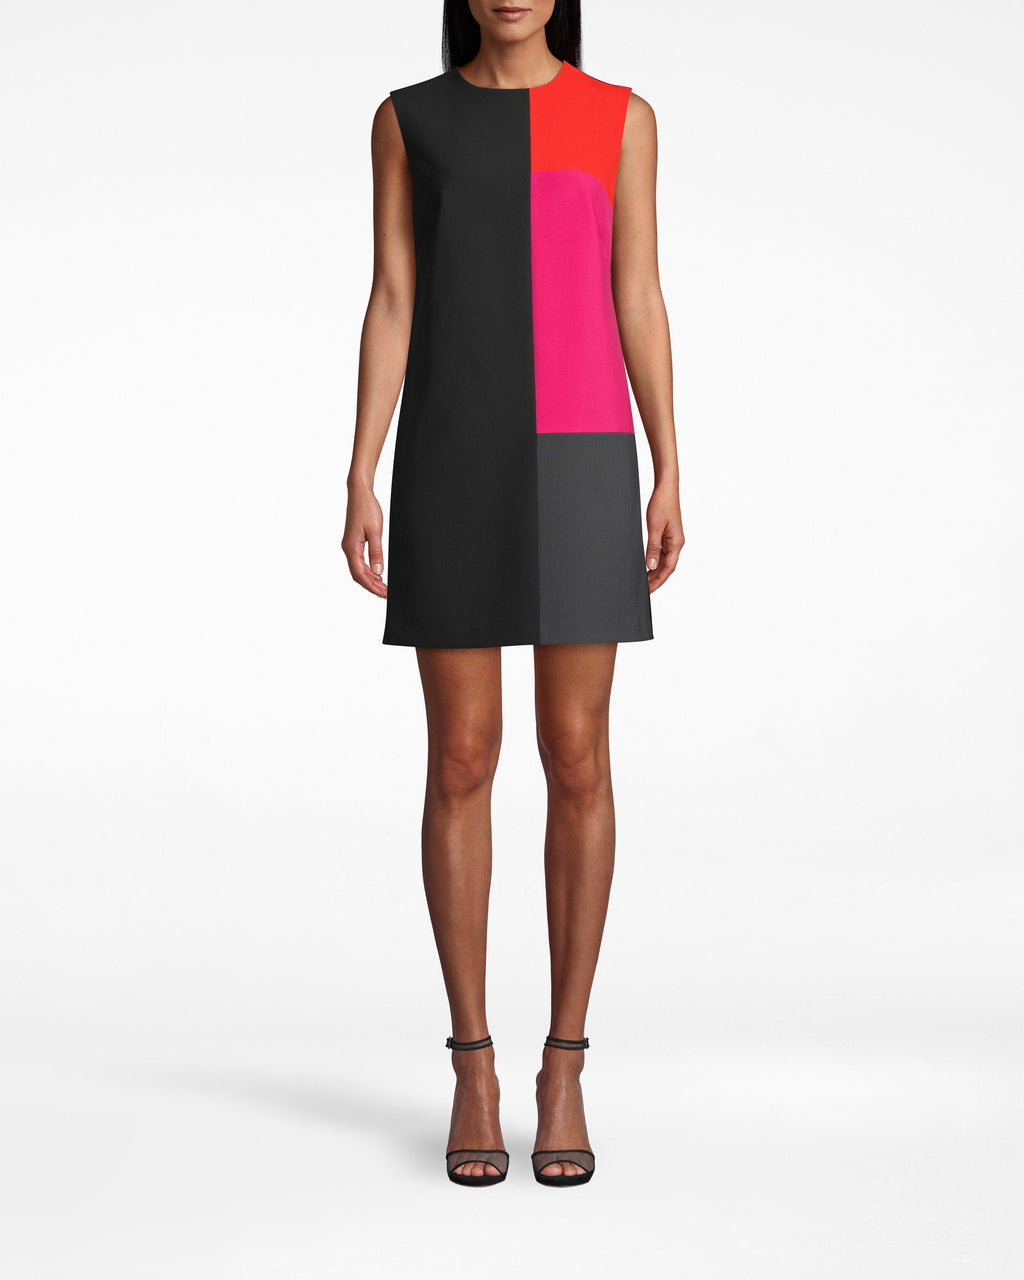 BP10271 - STRETCHY TECH COLOR BLOCK DRESS - dresses - short - THE ULTIMATE DESK TO DRINKS DRESS. THIS SHIFT SILHOUETTE IS CRAFTED FROM STETCHY TECH AND FEATURES BRIGHT POPS OF COLOR. HEMLINE HITS JUST ABOVE THE KNEE WITH A CONCEALED BACK ZIPPER FOR CLOSURE.